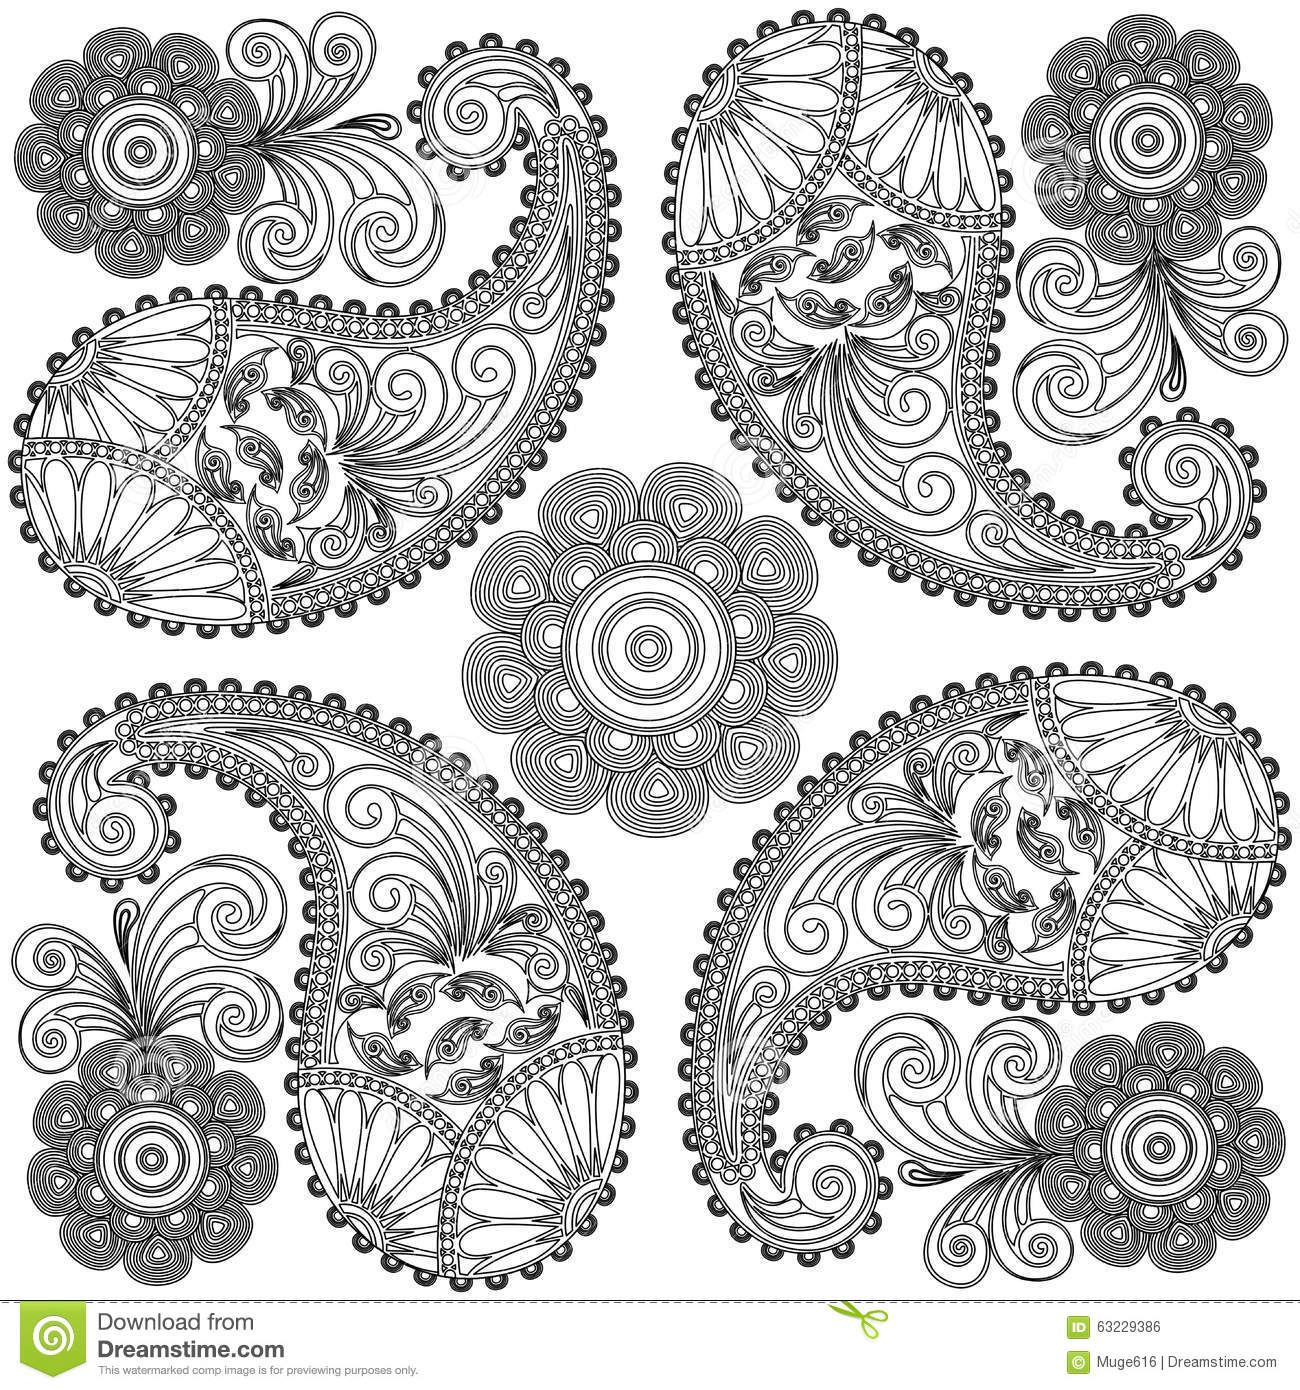 Paisley Doodlesblack And White Mandalacoloring Pages